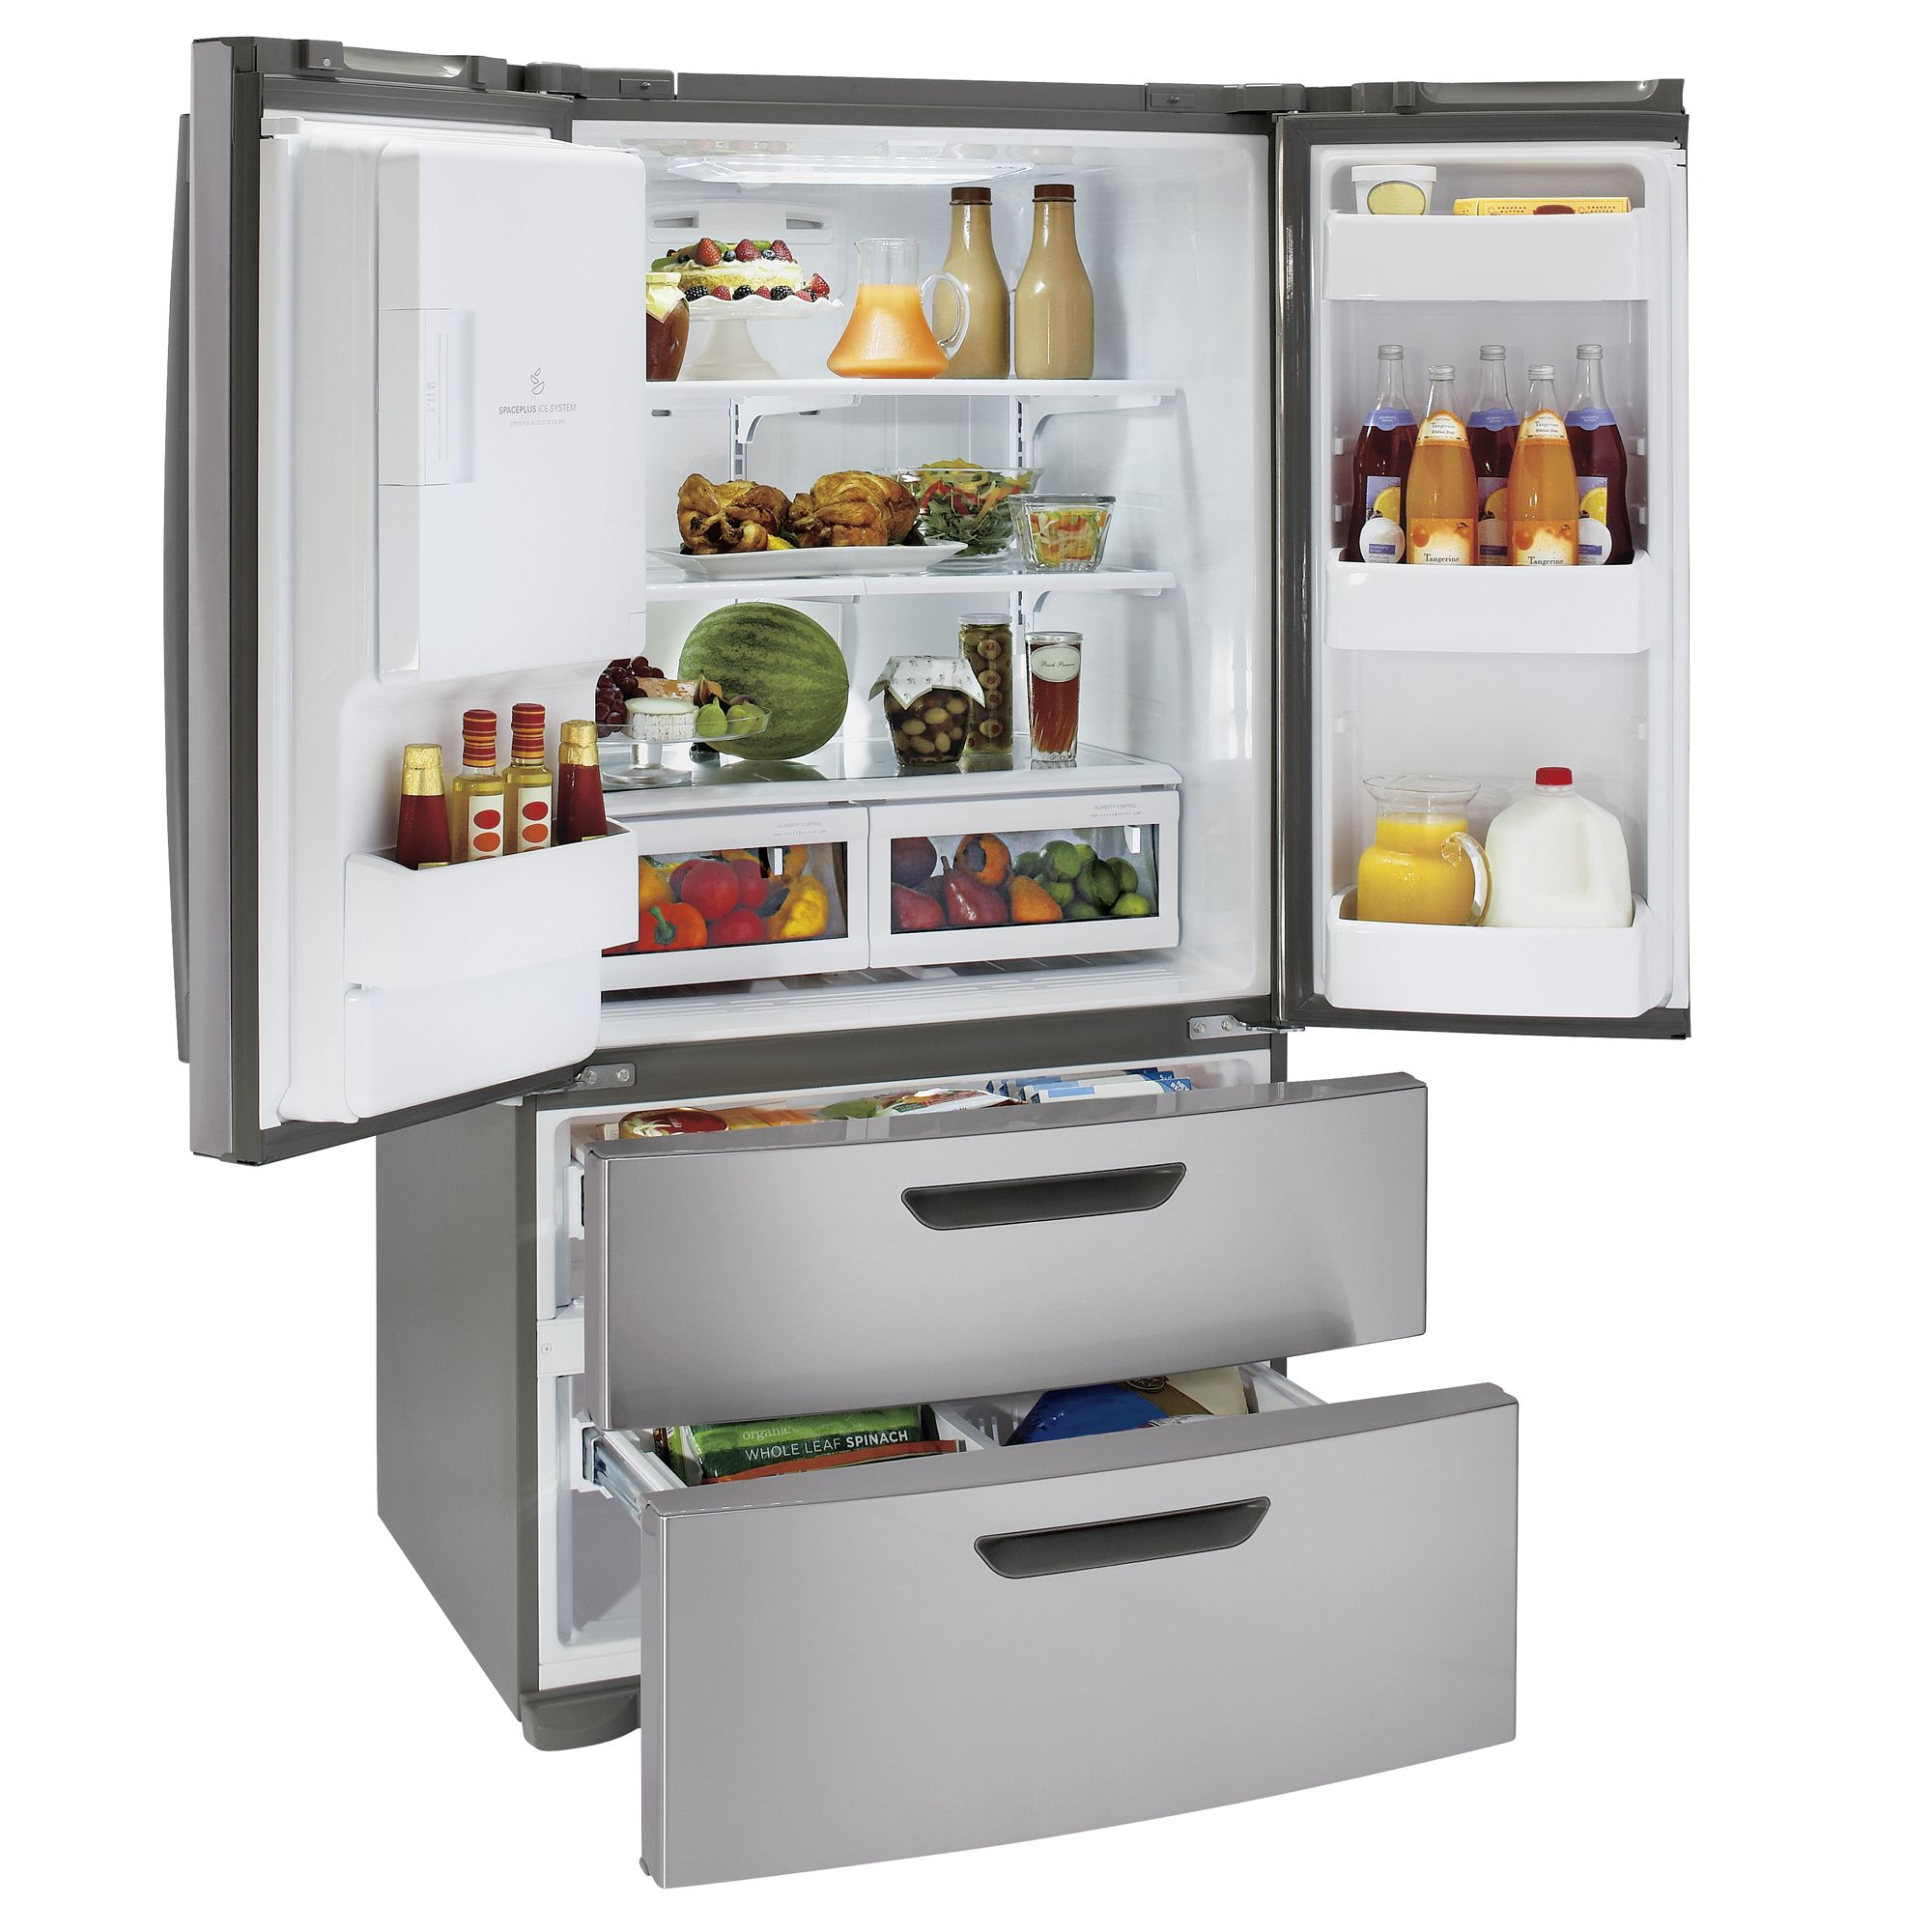 24.7 cu. ft. French-Door Bottom-Freezer Refrigerator (LMX25964)                                                                  at mygofer.com